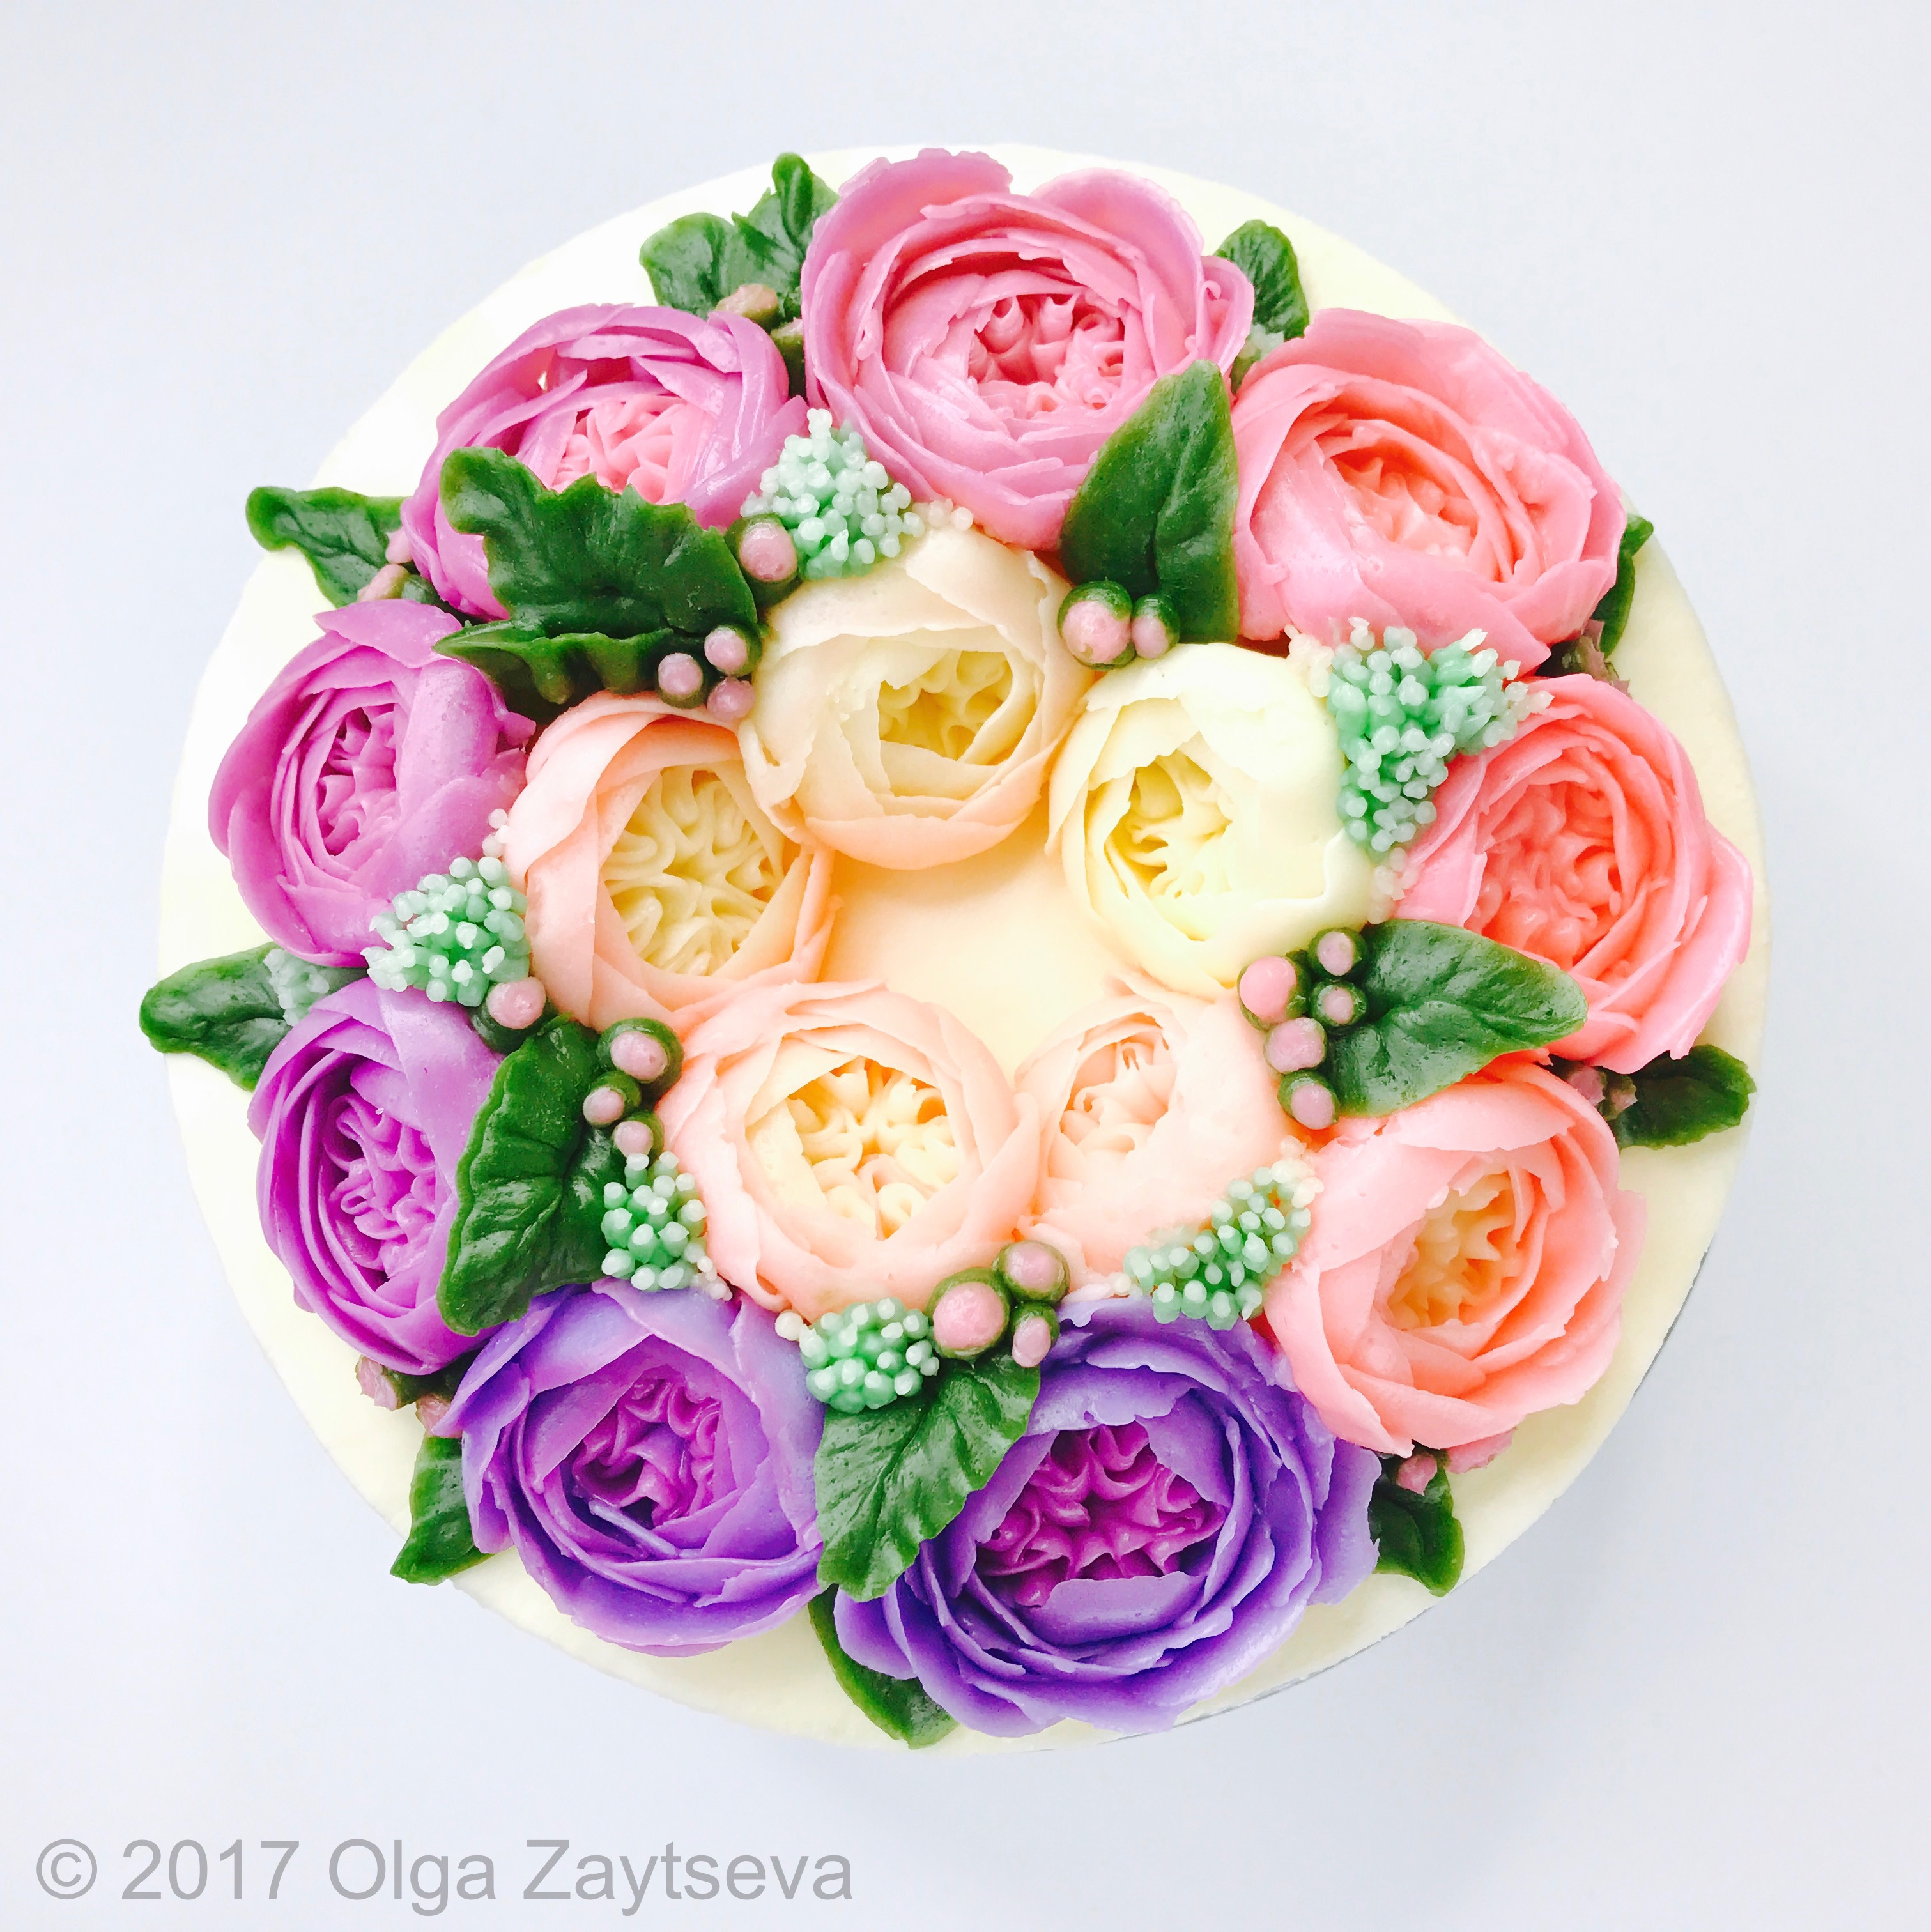 How to make ombre roses buttercream flower cake wow your next party learn to mix pipe and decorate marvelous ombre roses buttercream flower wreath cake izmirmasajfo